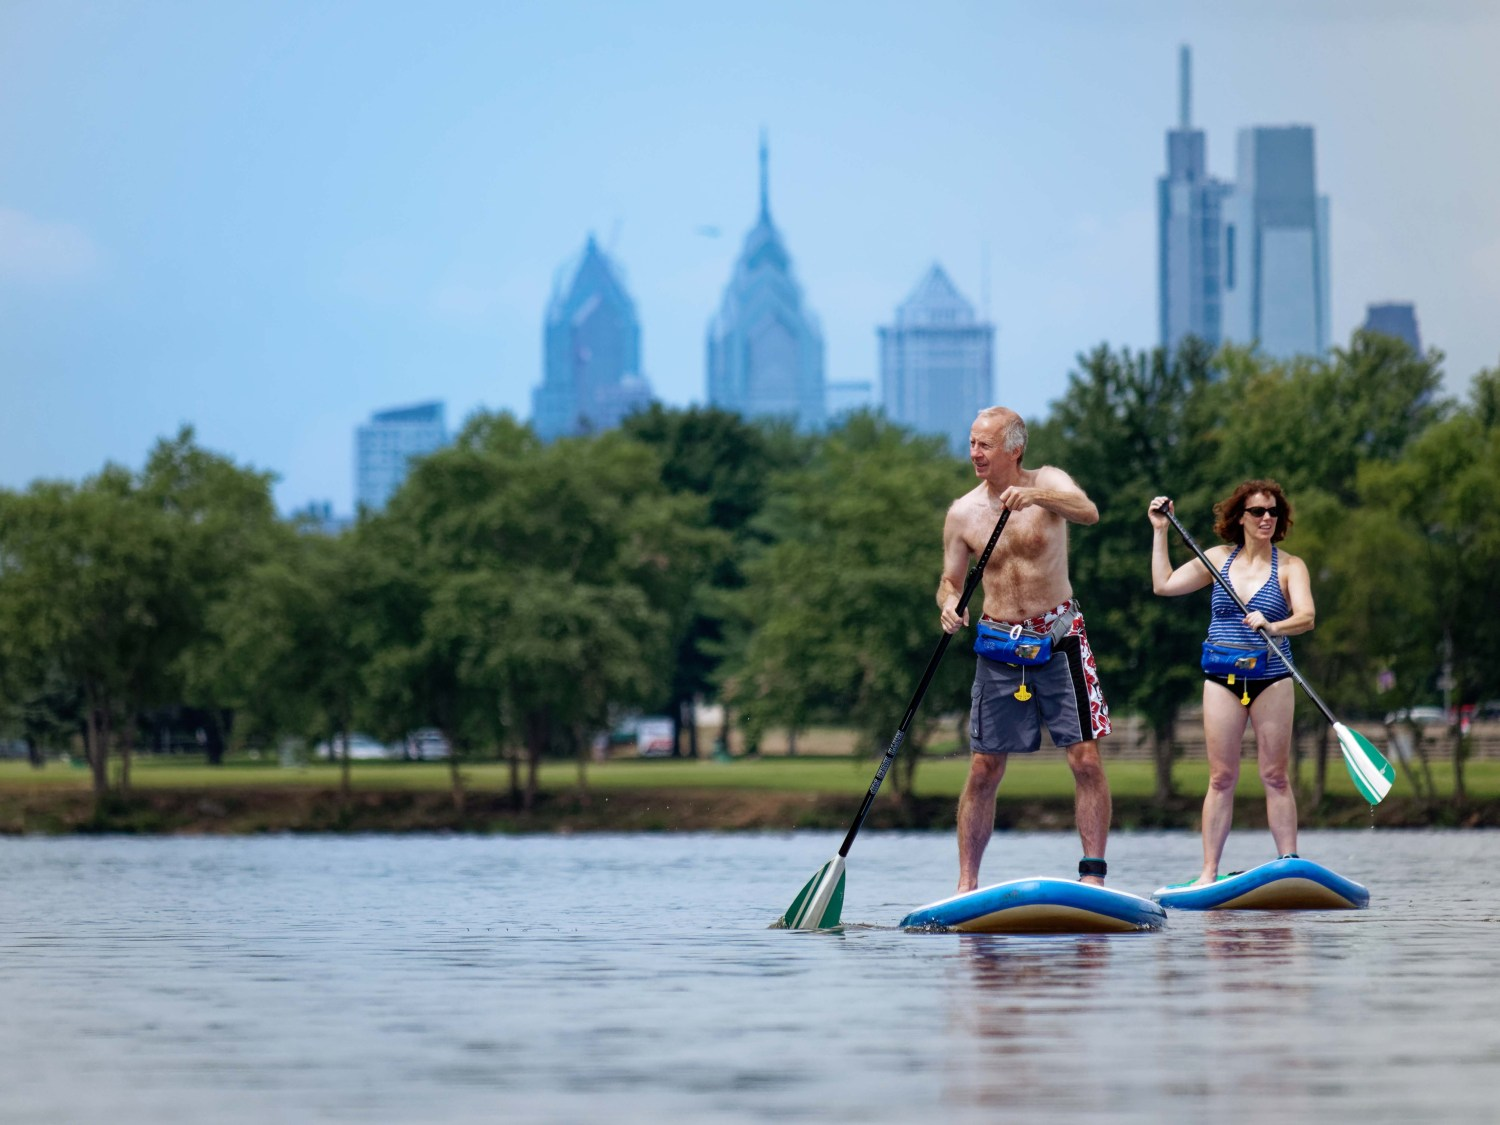 Earth River SUP riders at boating dock